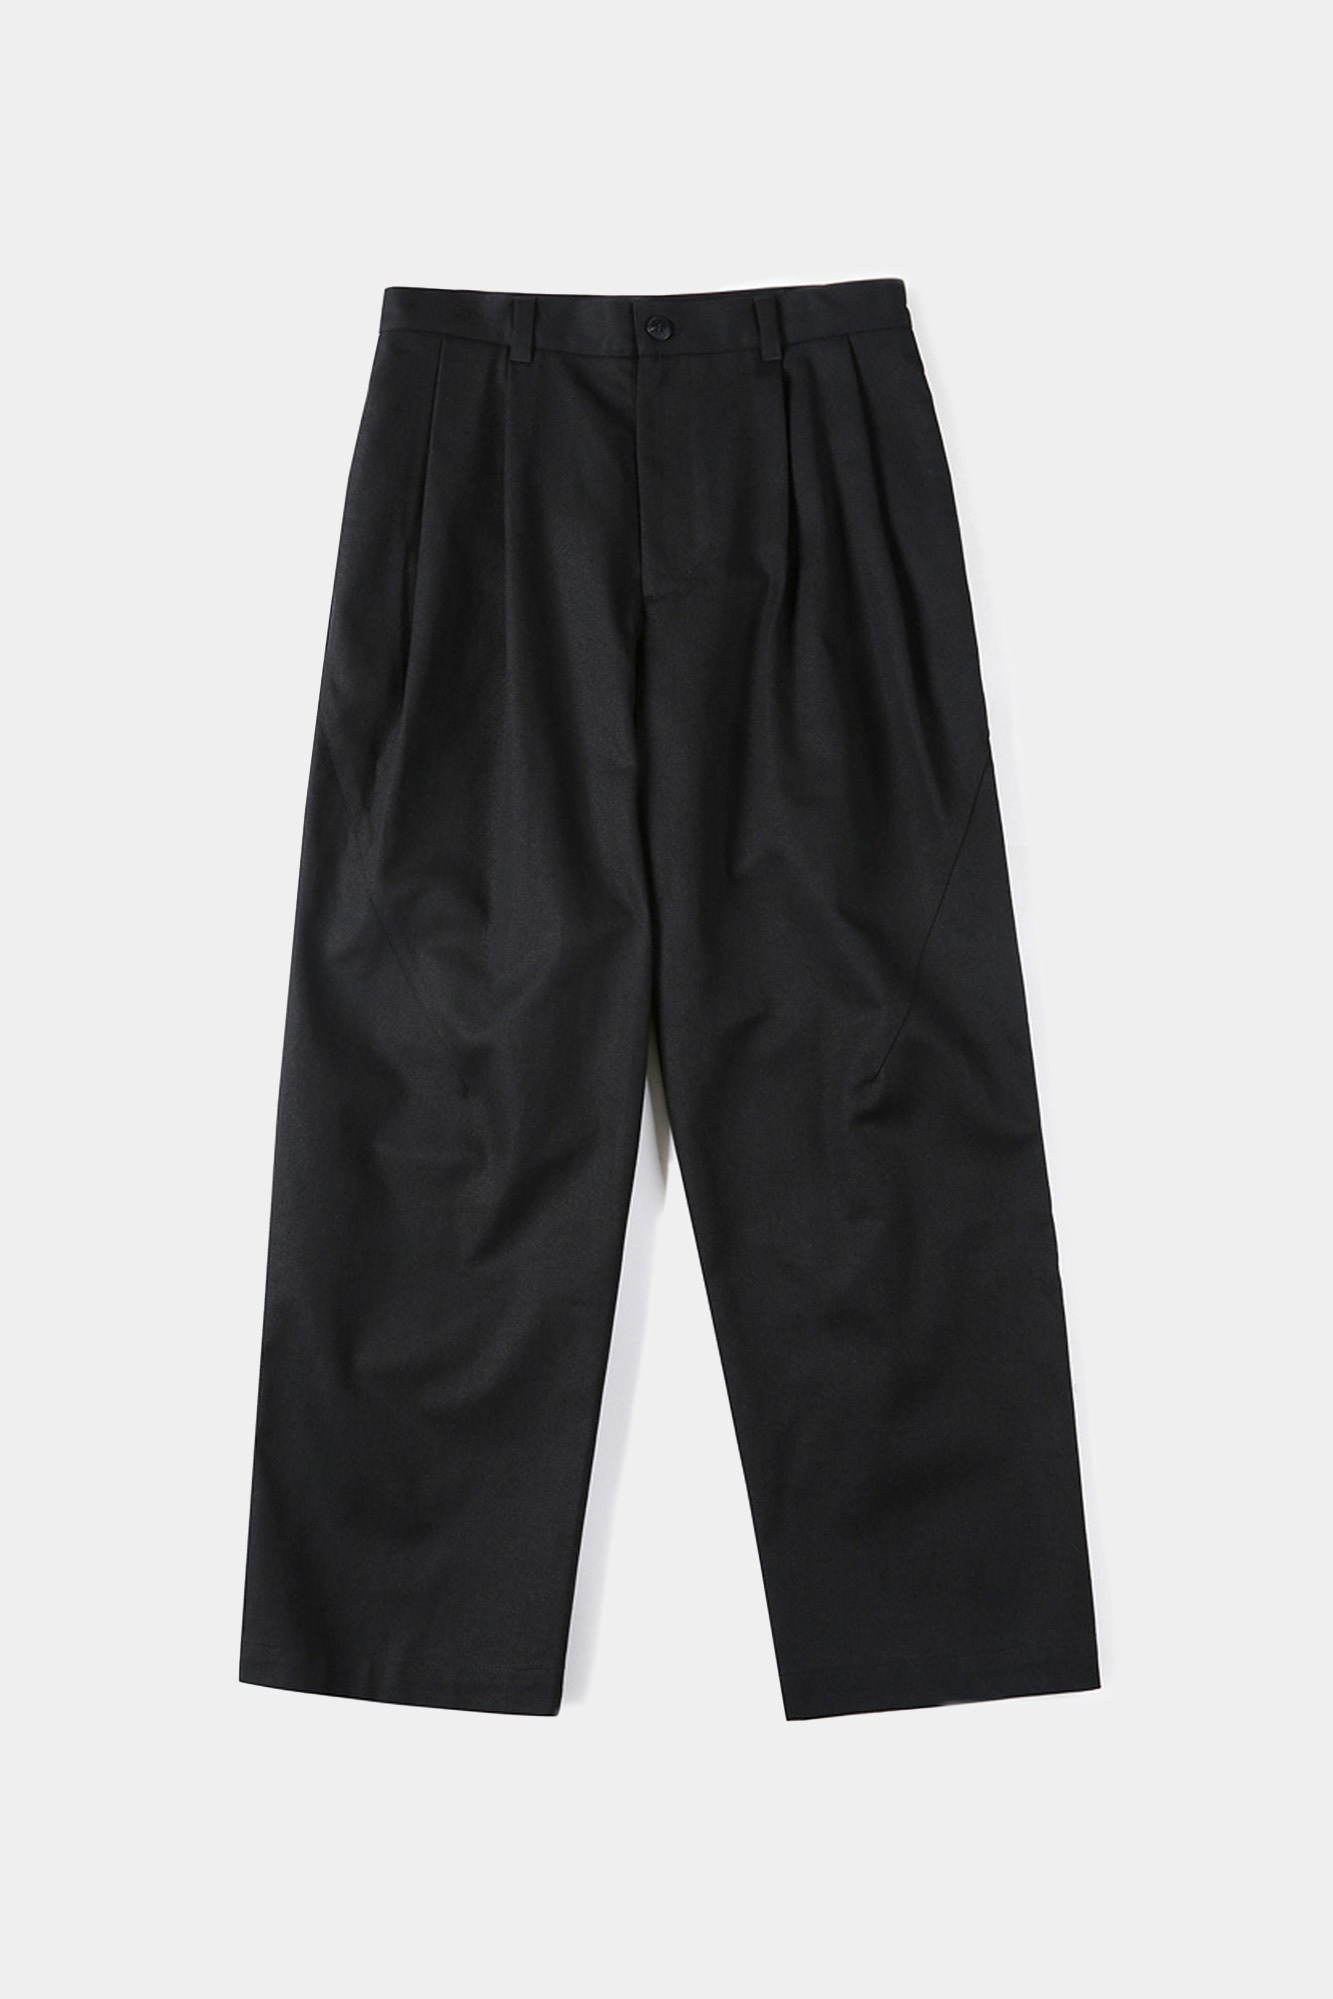 "SHIRTER Two Tuck Jar Pants ""Black"""